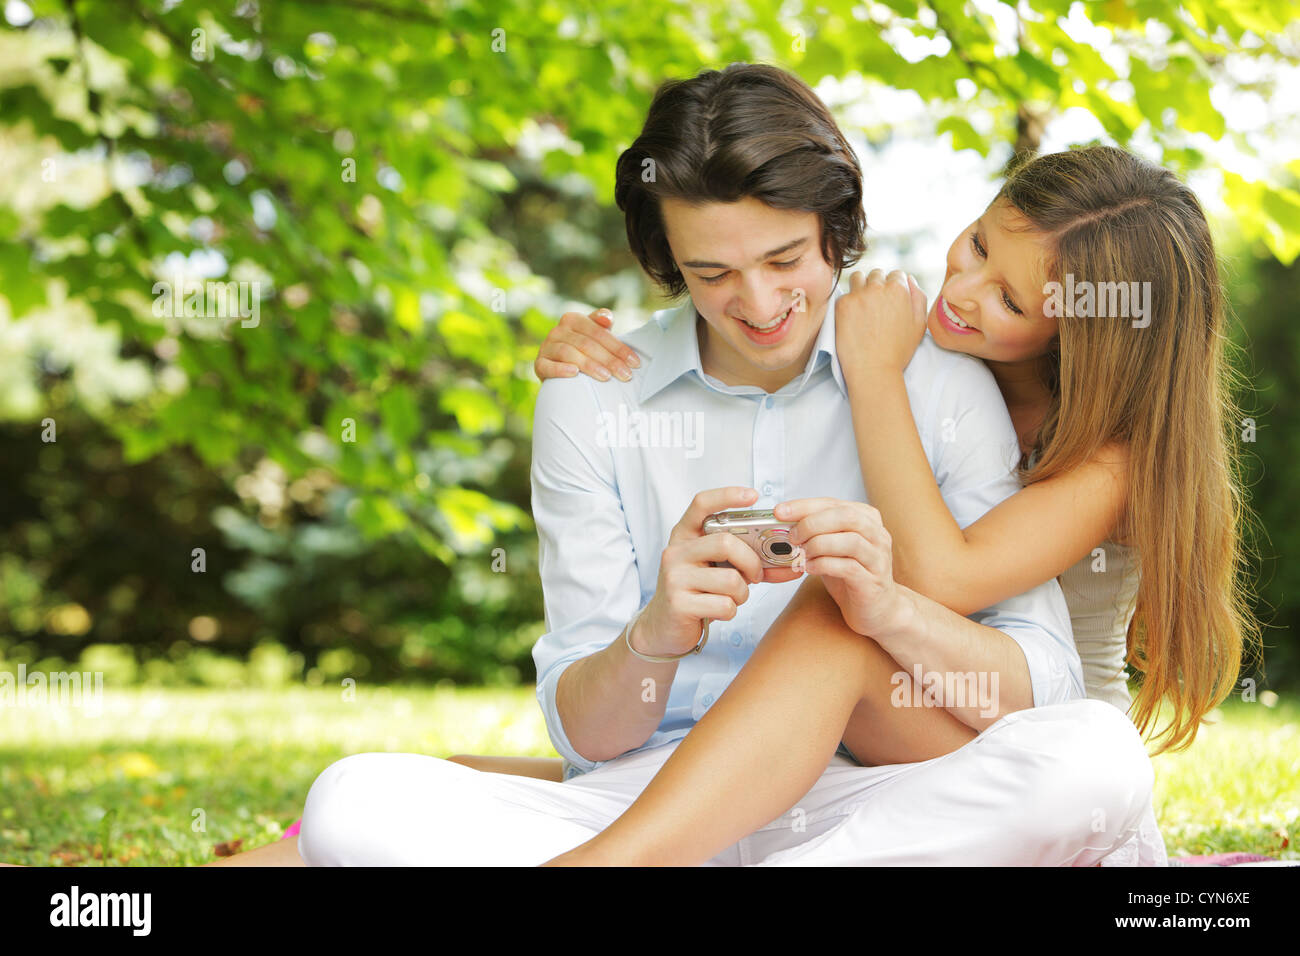 a couple of lovers, view photos on the display of their compact camera - Stock Image